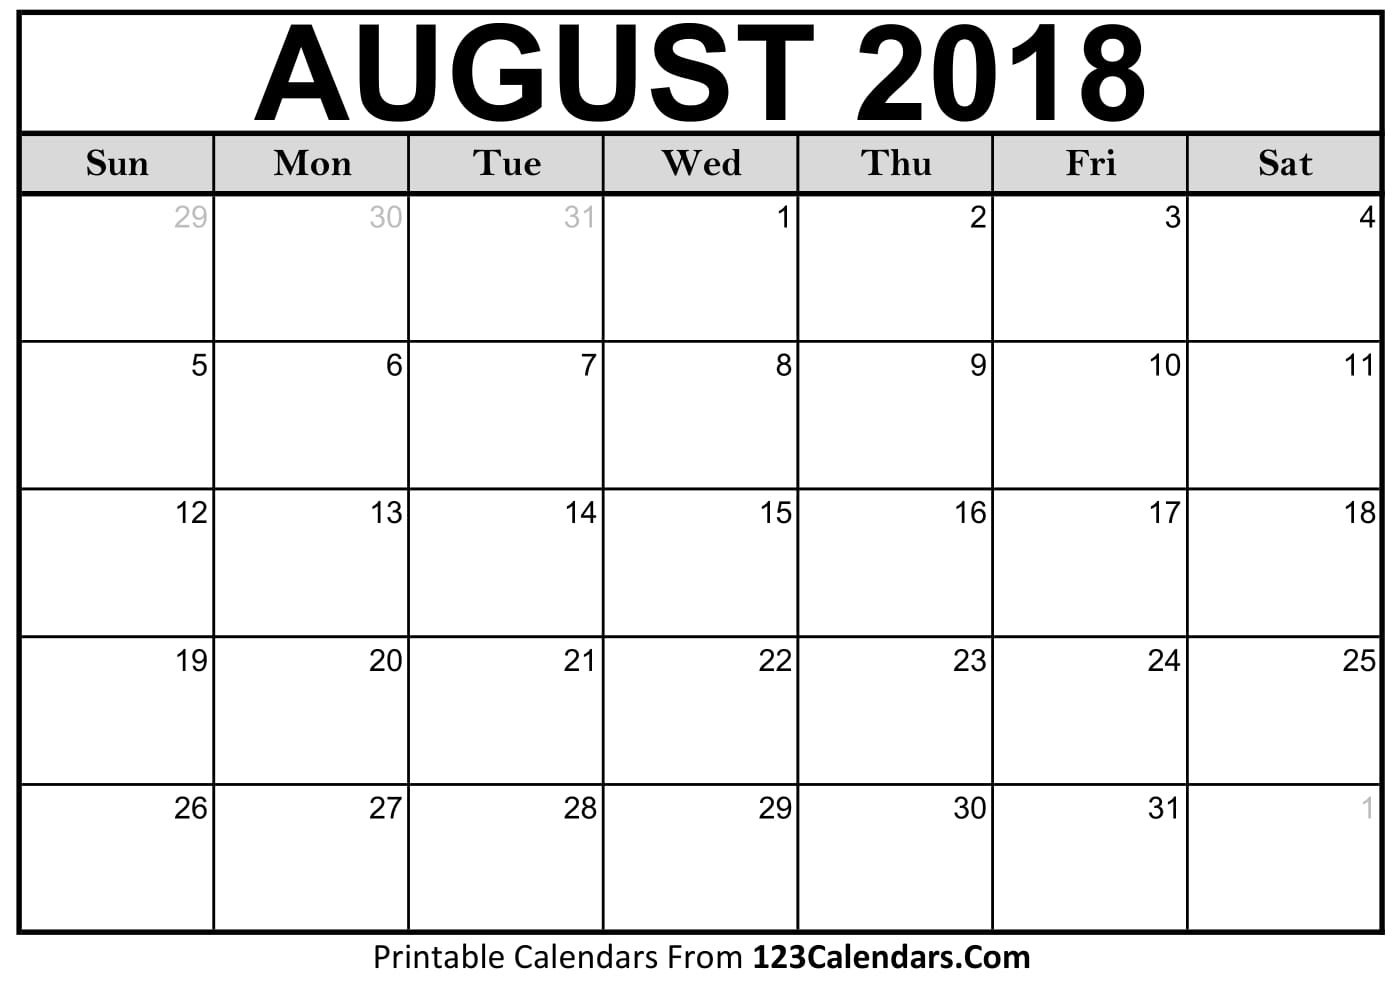 Printable August 2018 Calendar Templates - 123Calendars  Picture Of August On Calendar